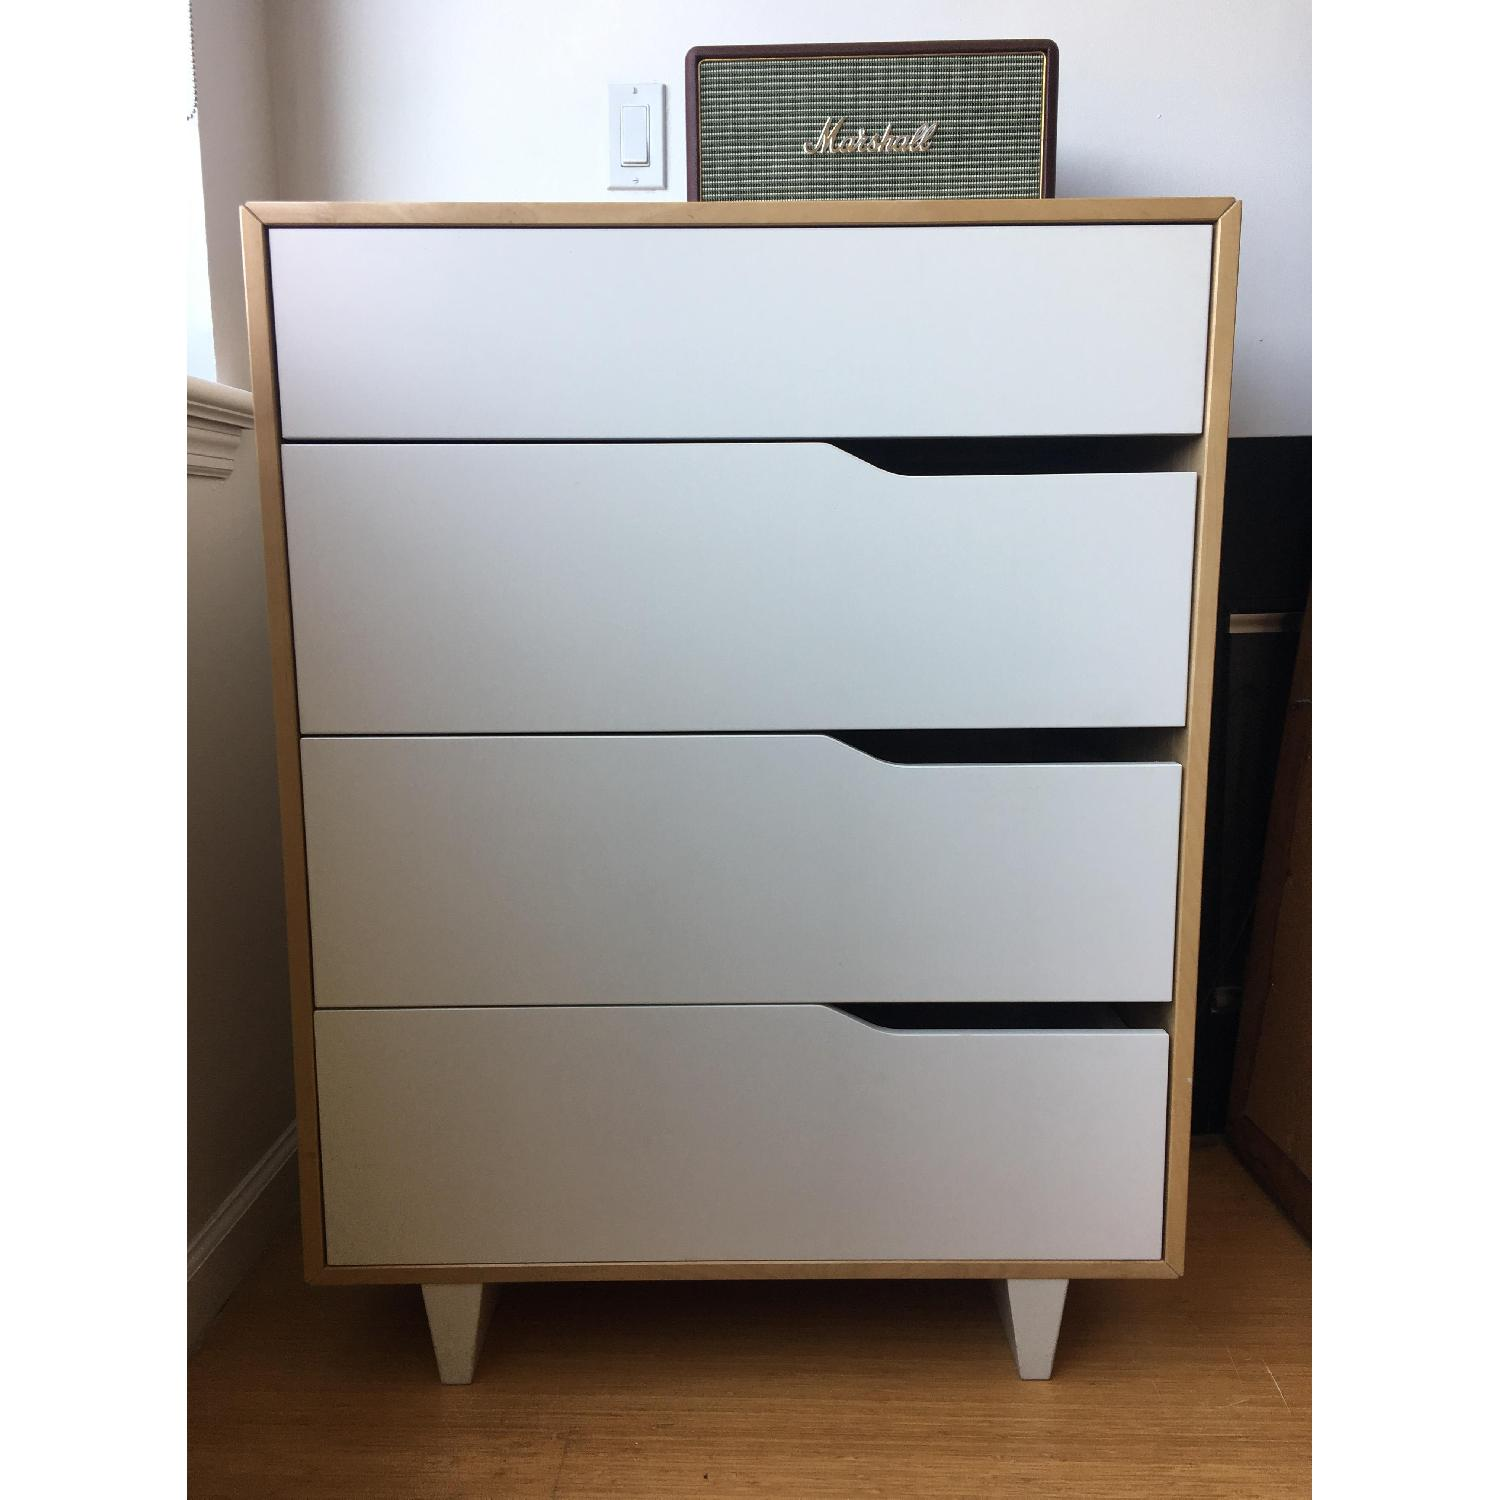 songesand en with us dressers chests of departments bedroom catalog categories dresser chest drawers ikea seo